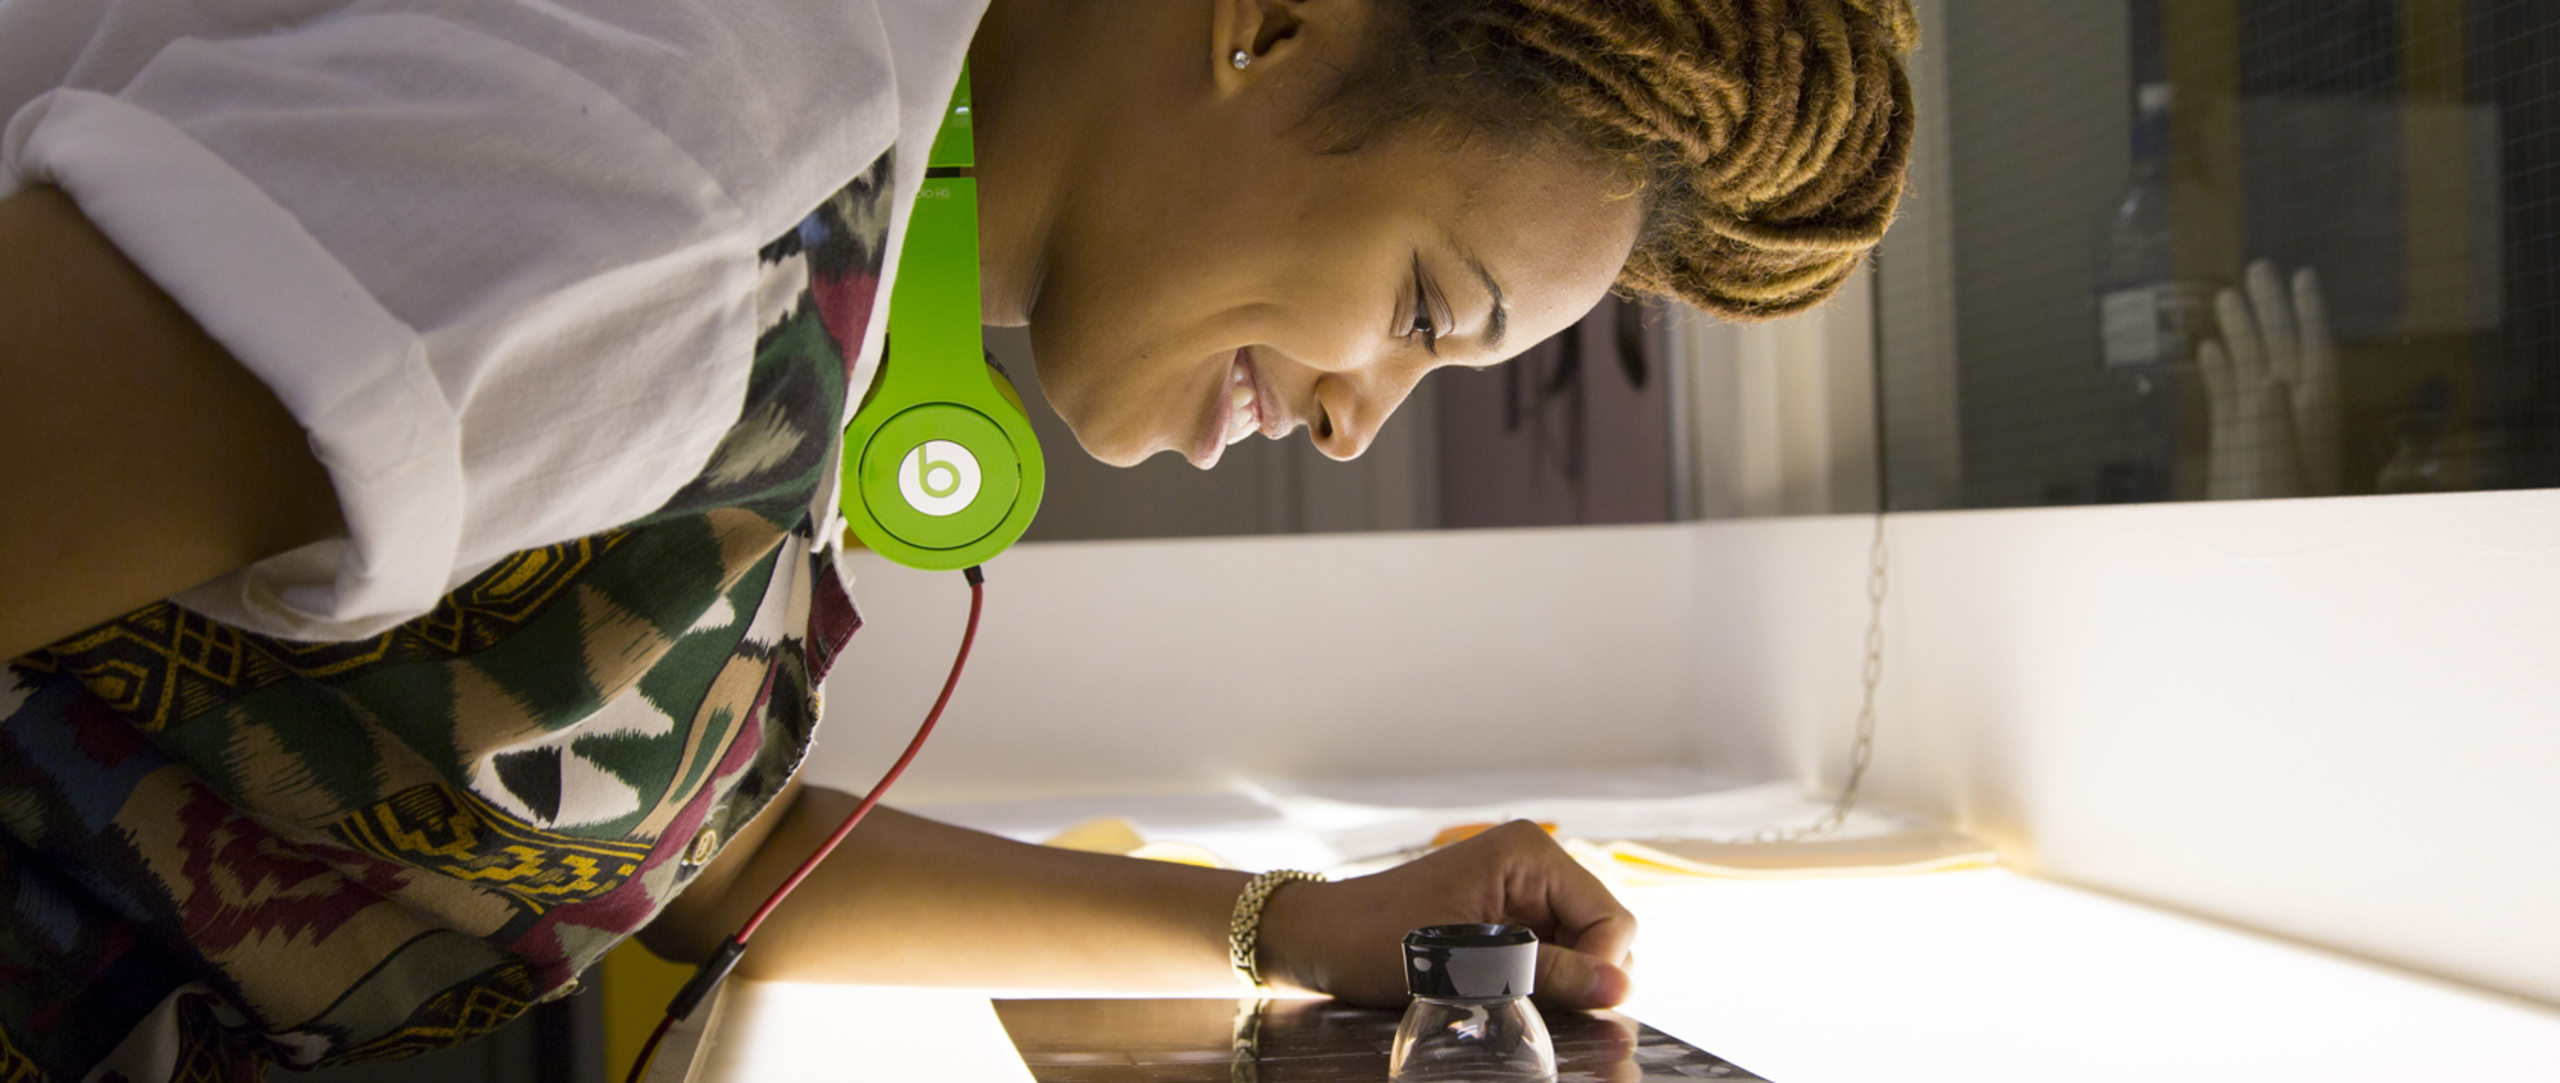 Richmond University image of a young woman wearing beats headphones studying photography